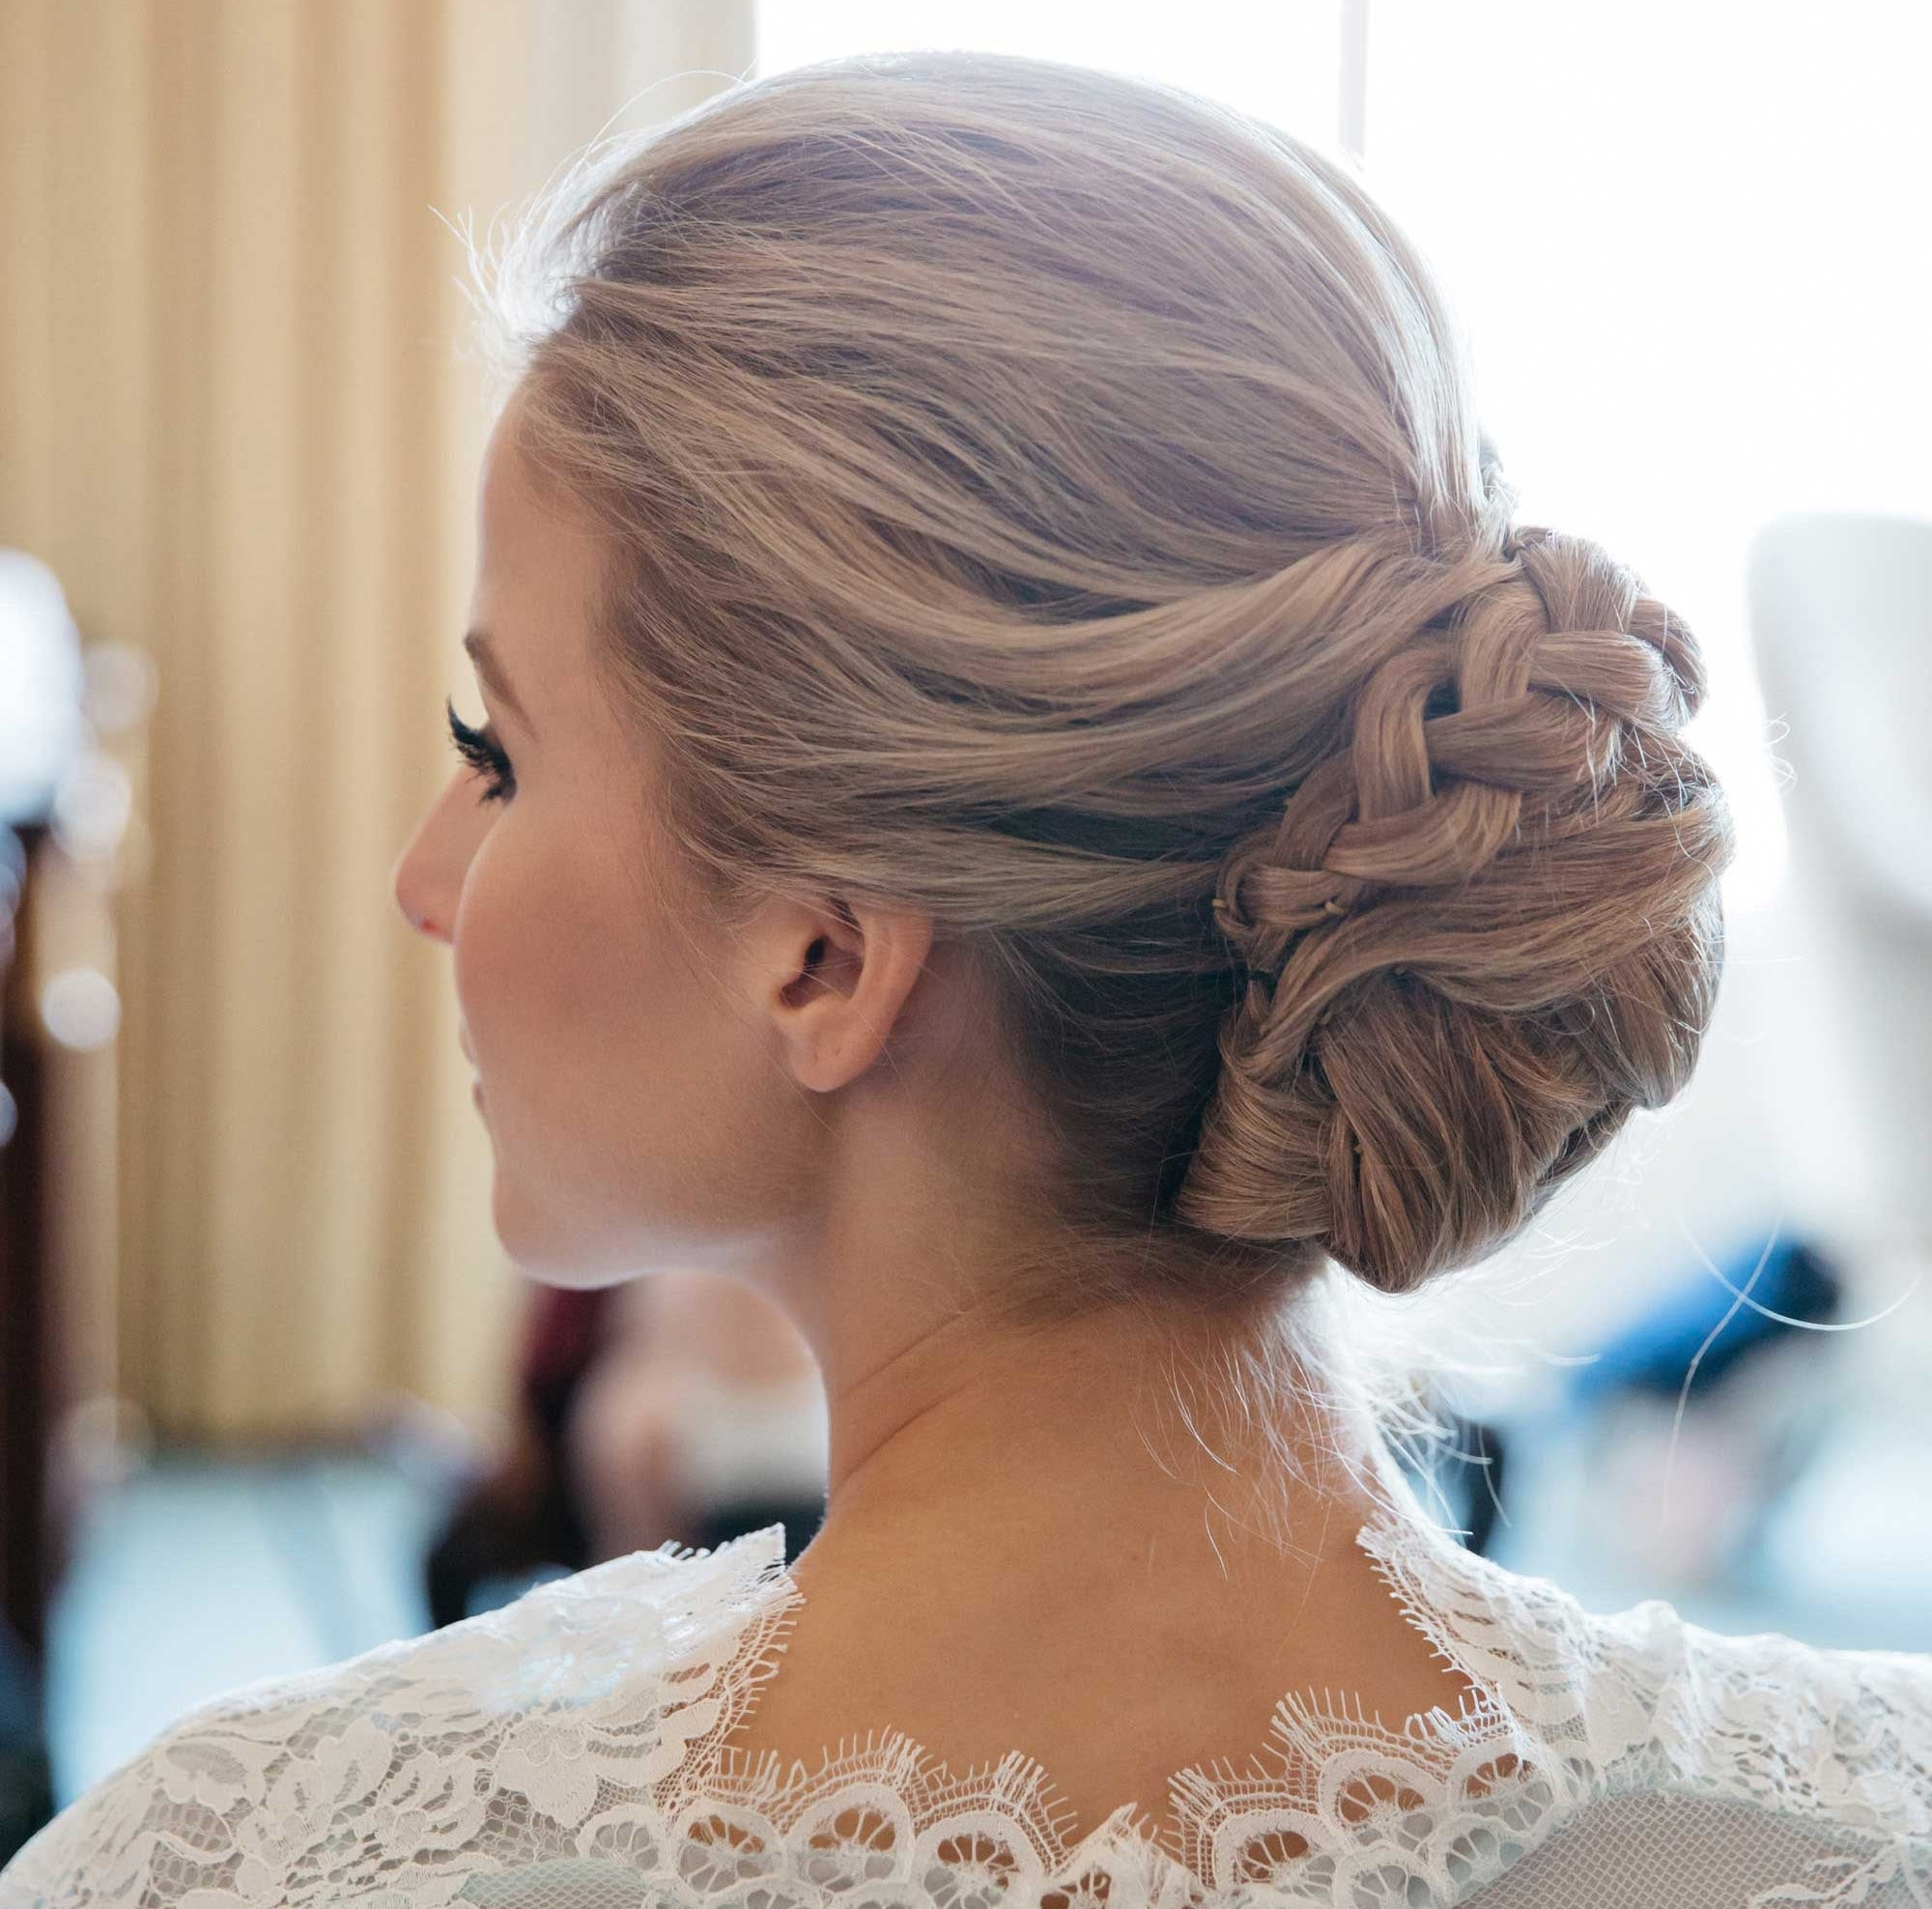 Classic Updo Hairstyles For Weddings Braided Hairstyles 5 Ideas For In Bridal Updo Hairstyles (View 10 of 15)